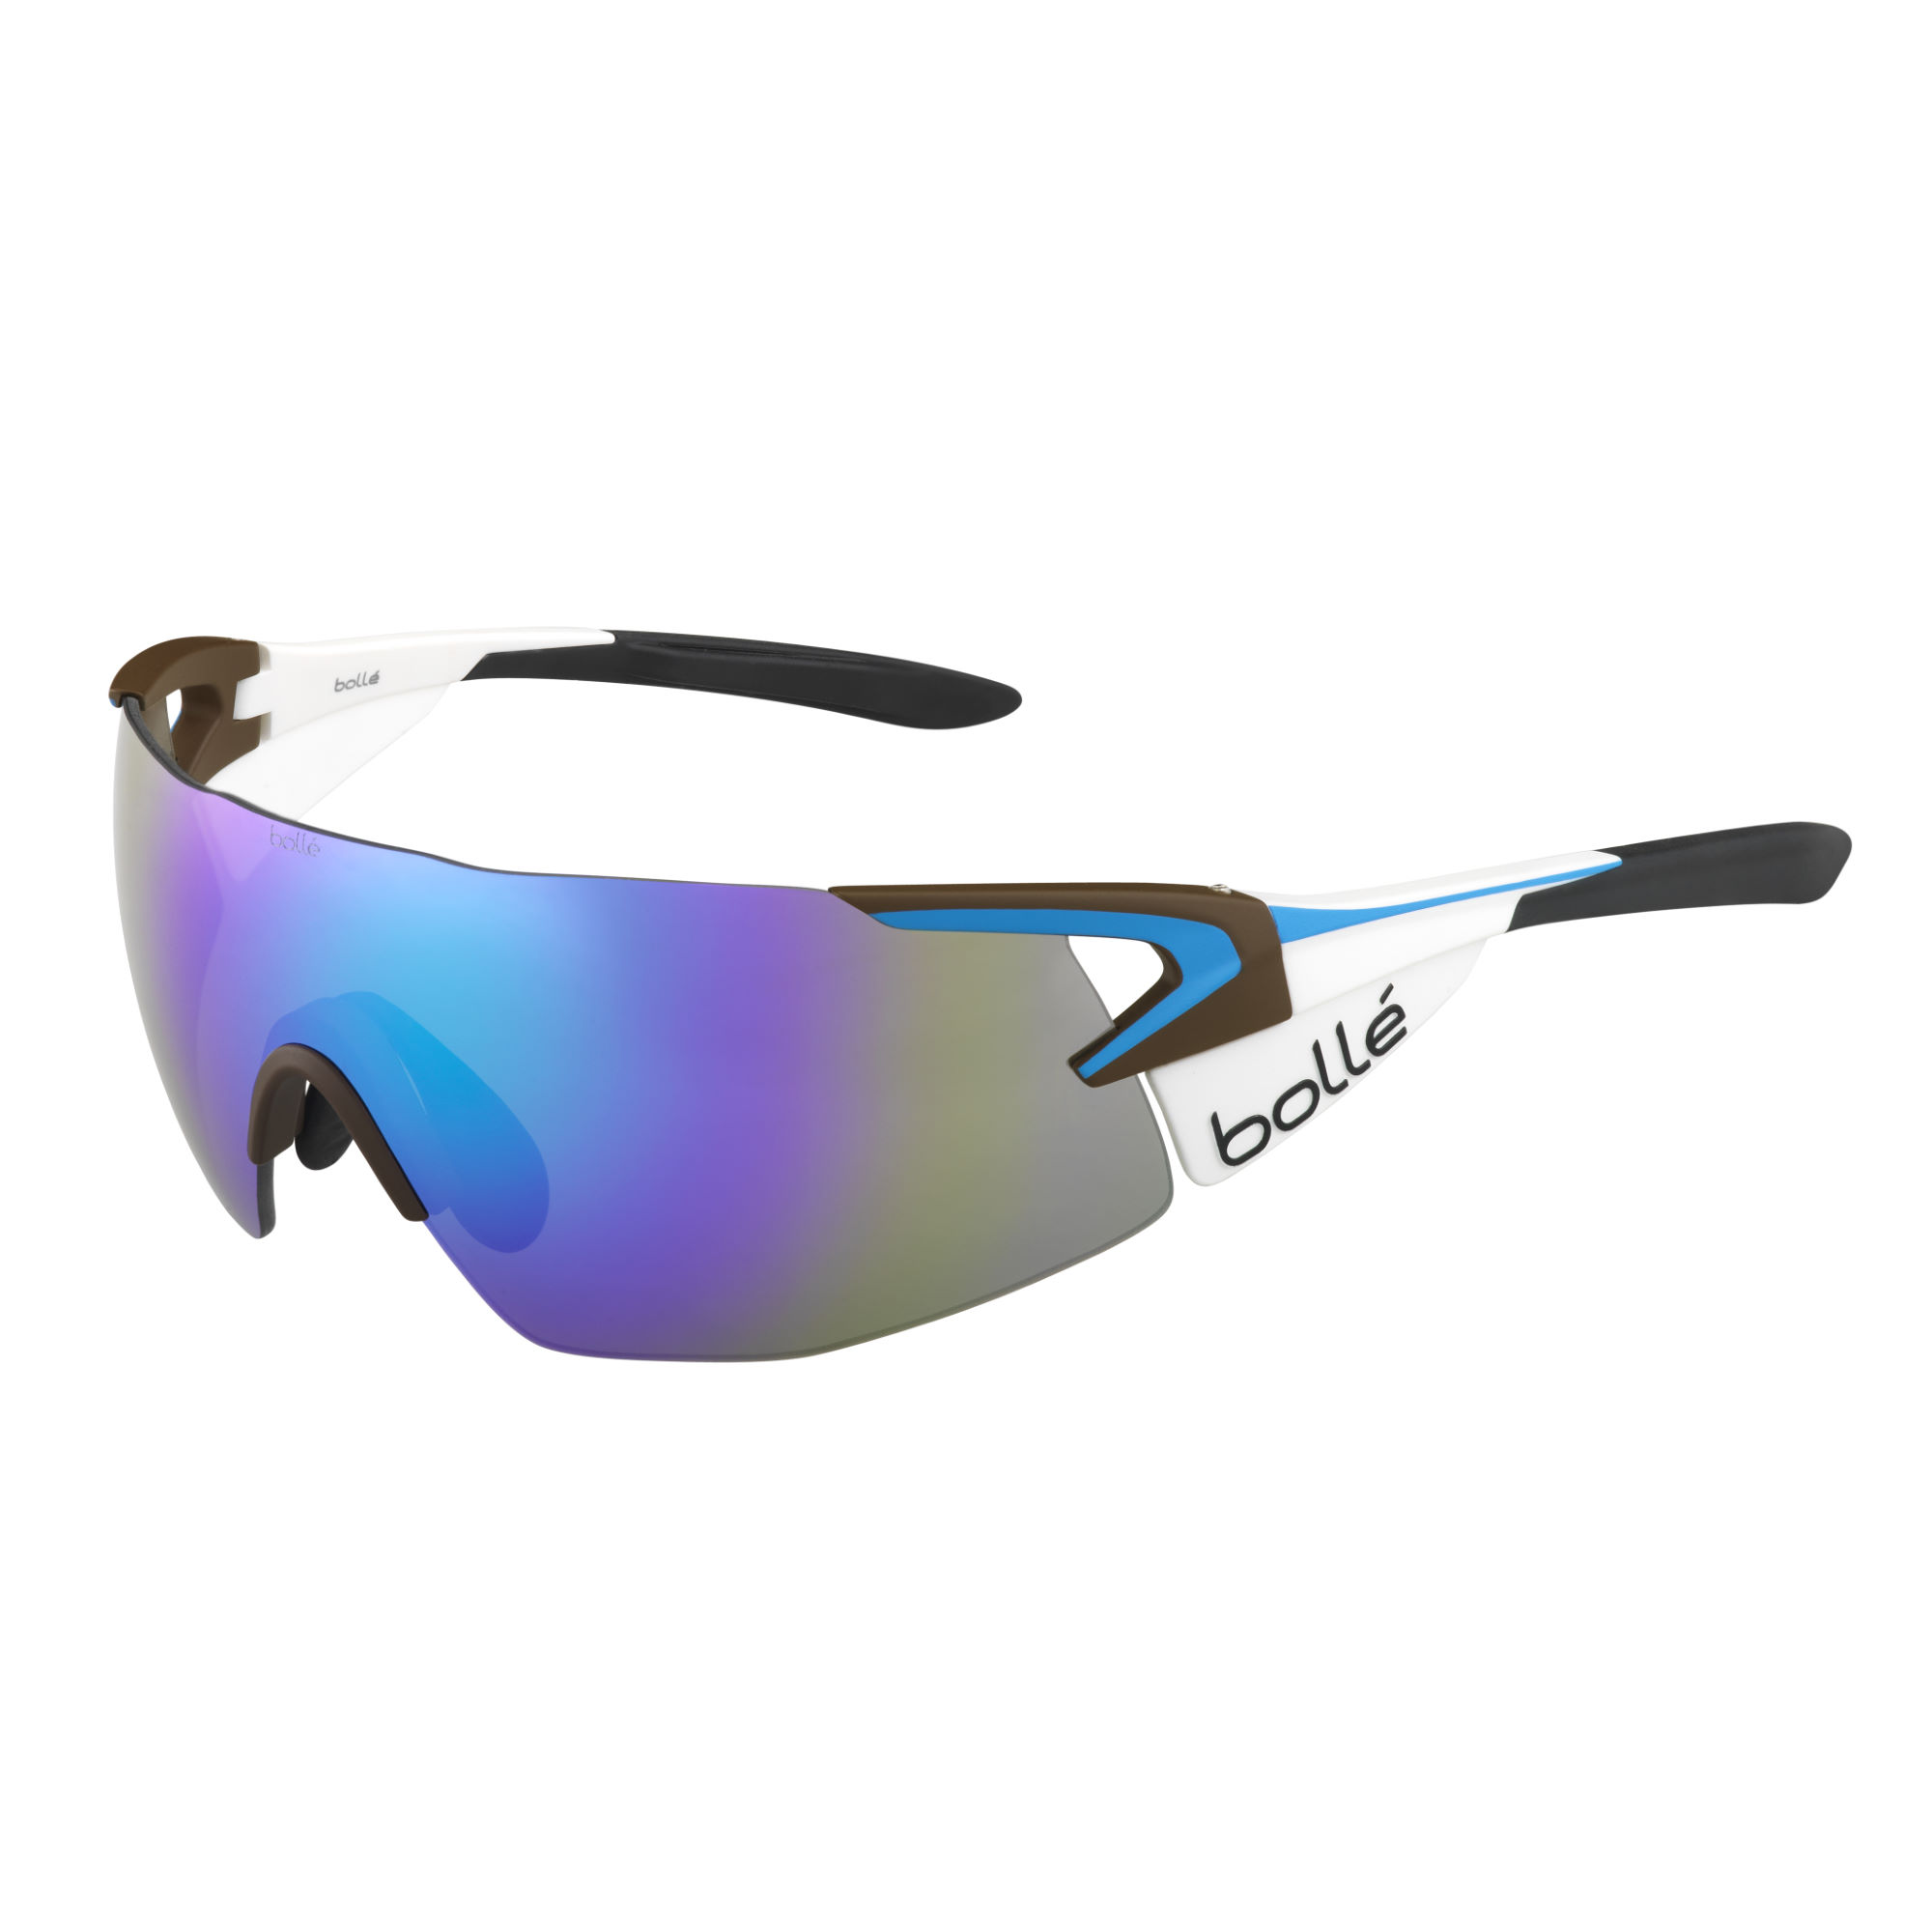 Best Place To Order Glasses Online 4h74